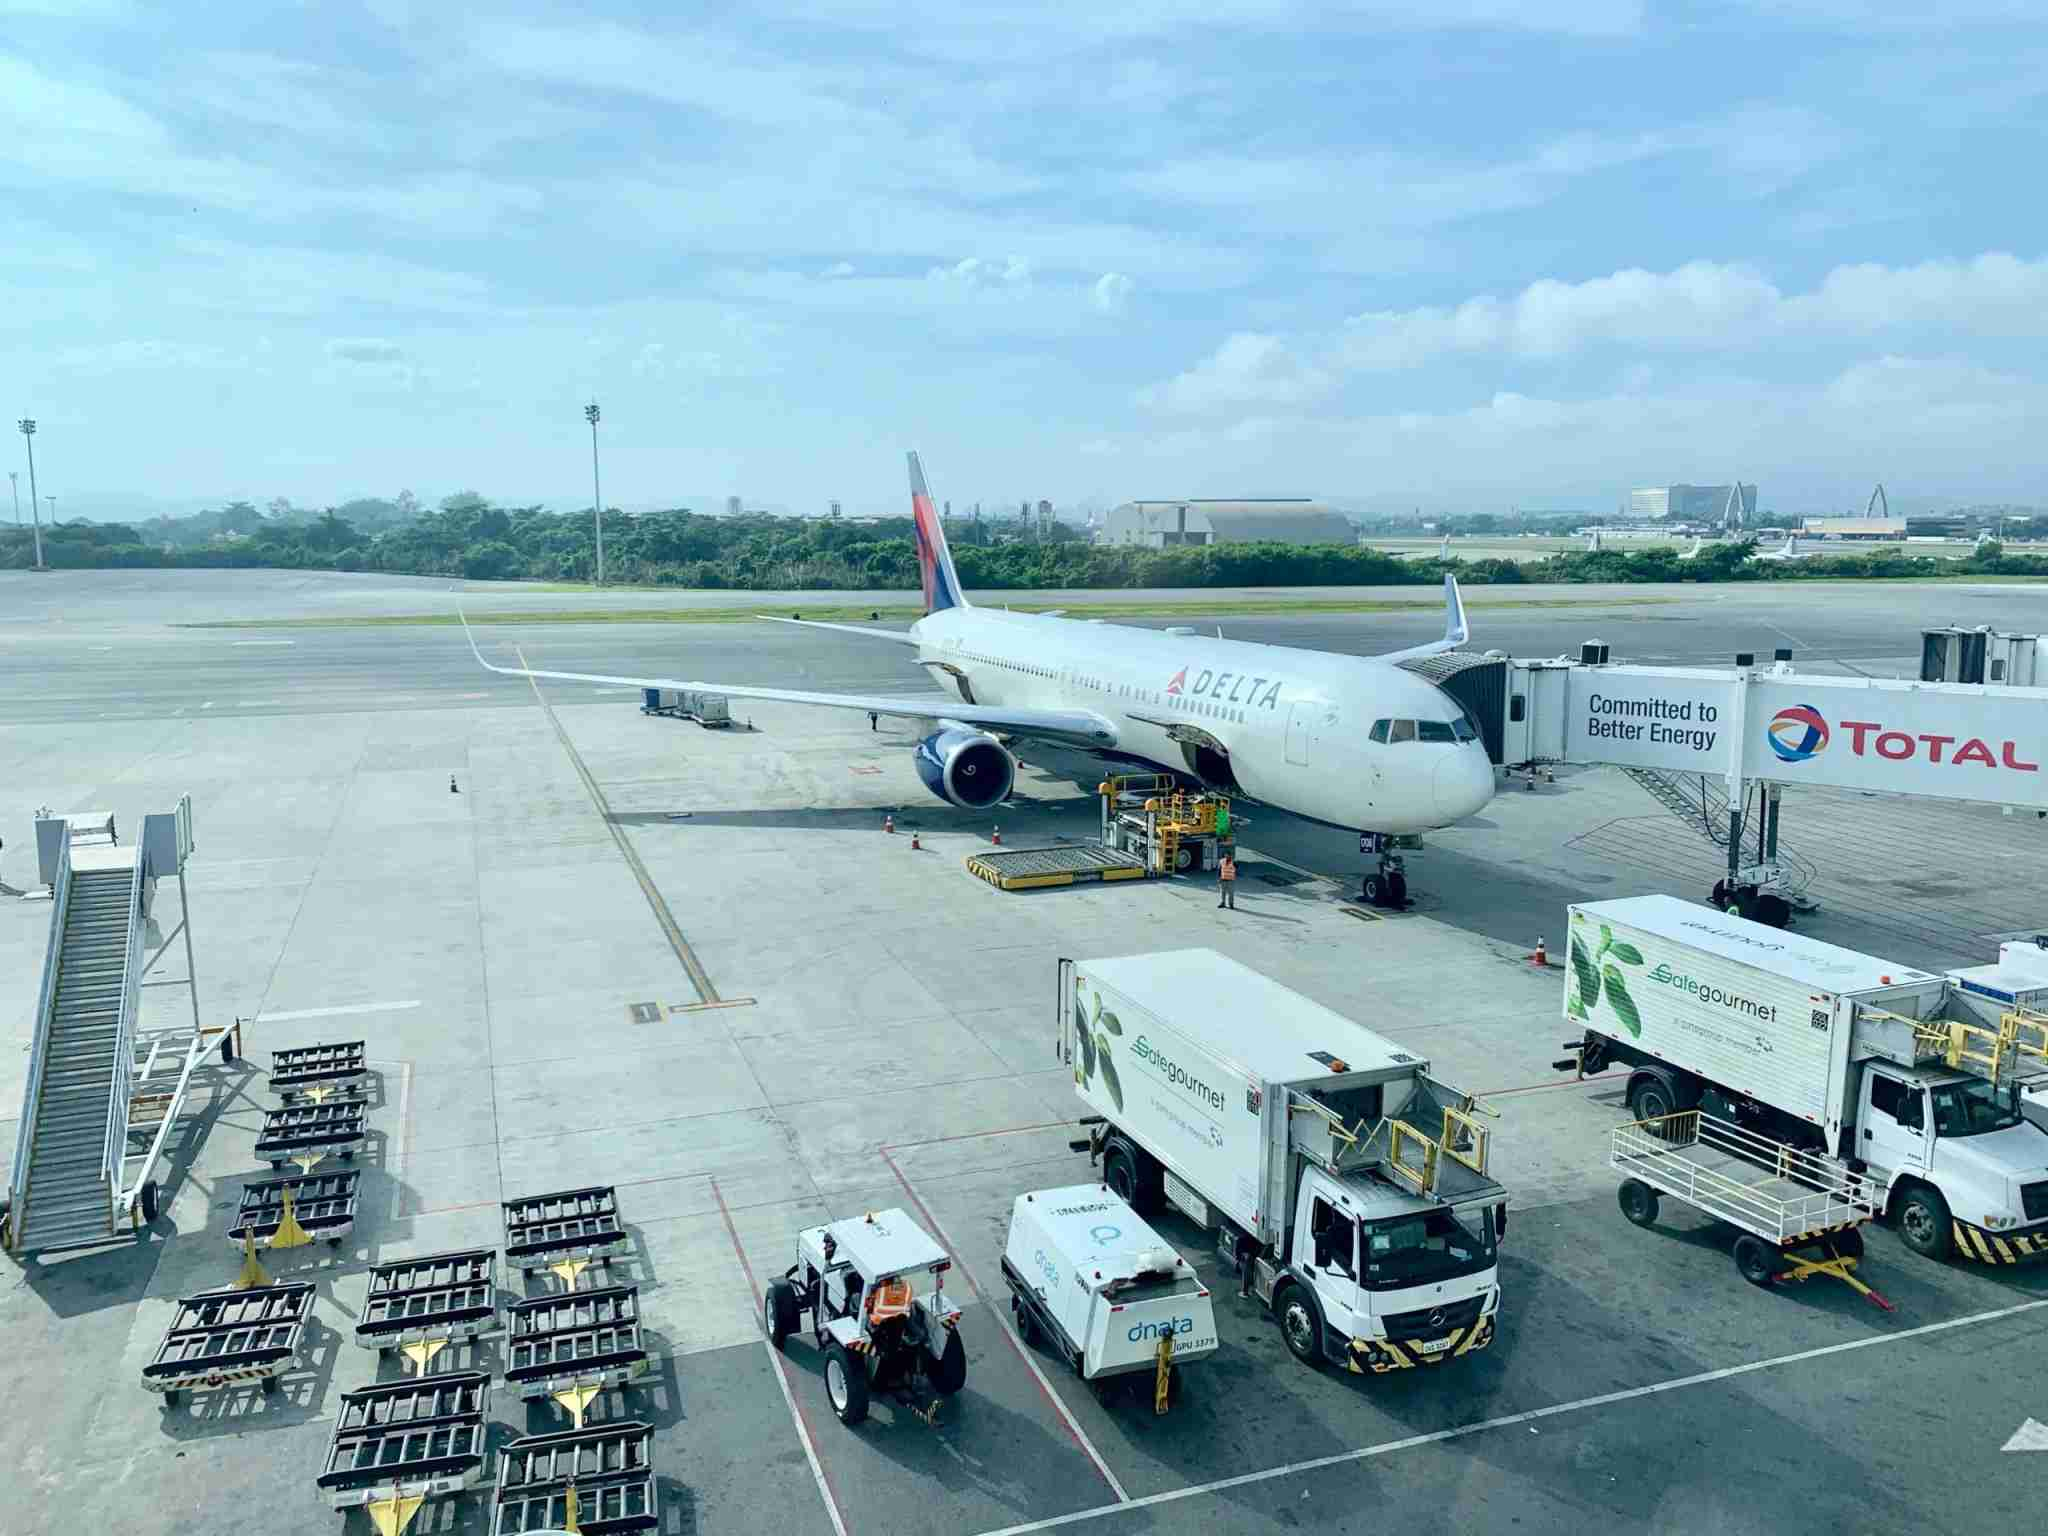 Delta 767-300R being loaded at Rio de Janeiro International Airport.